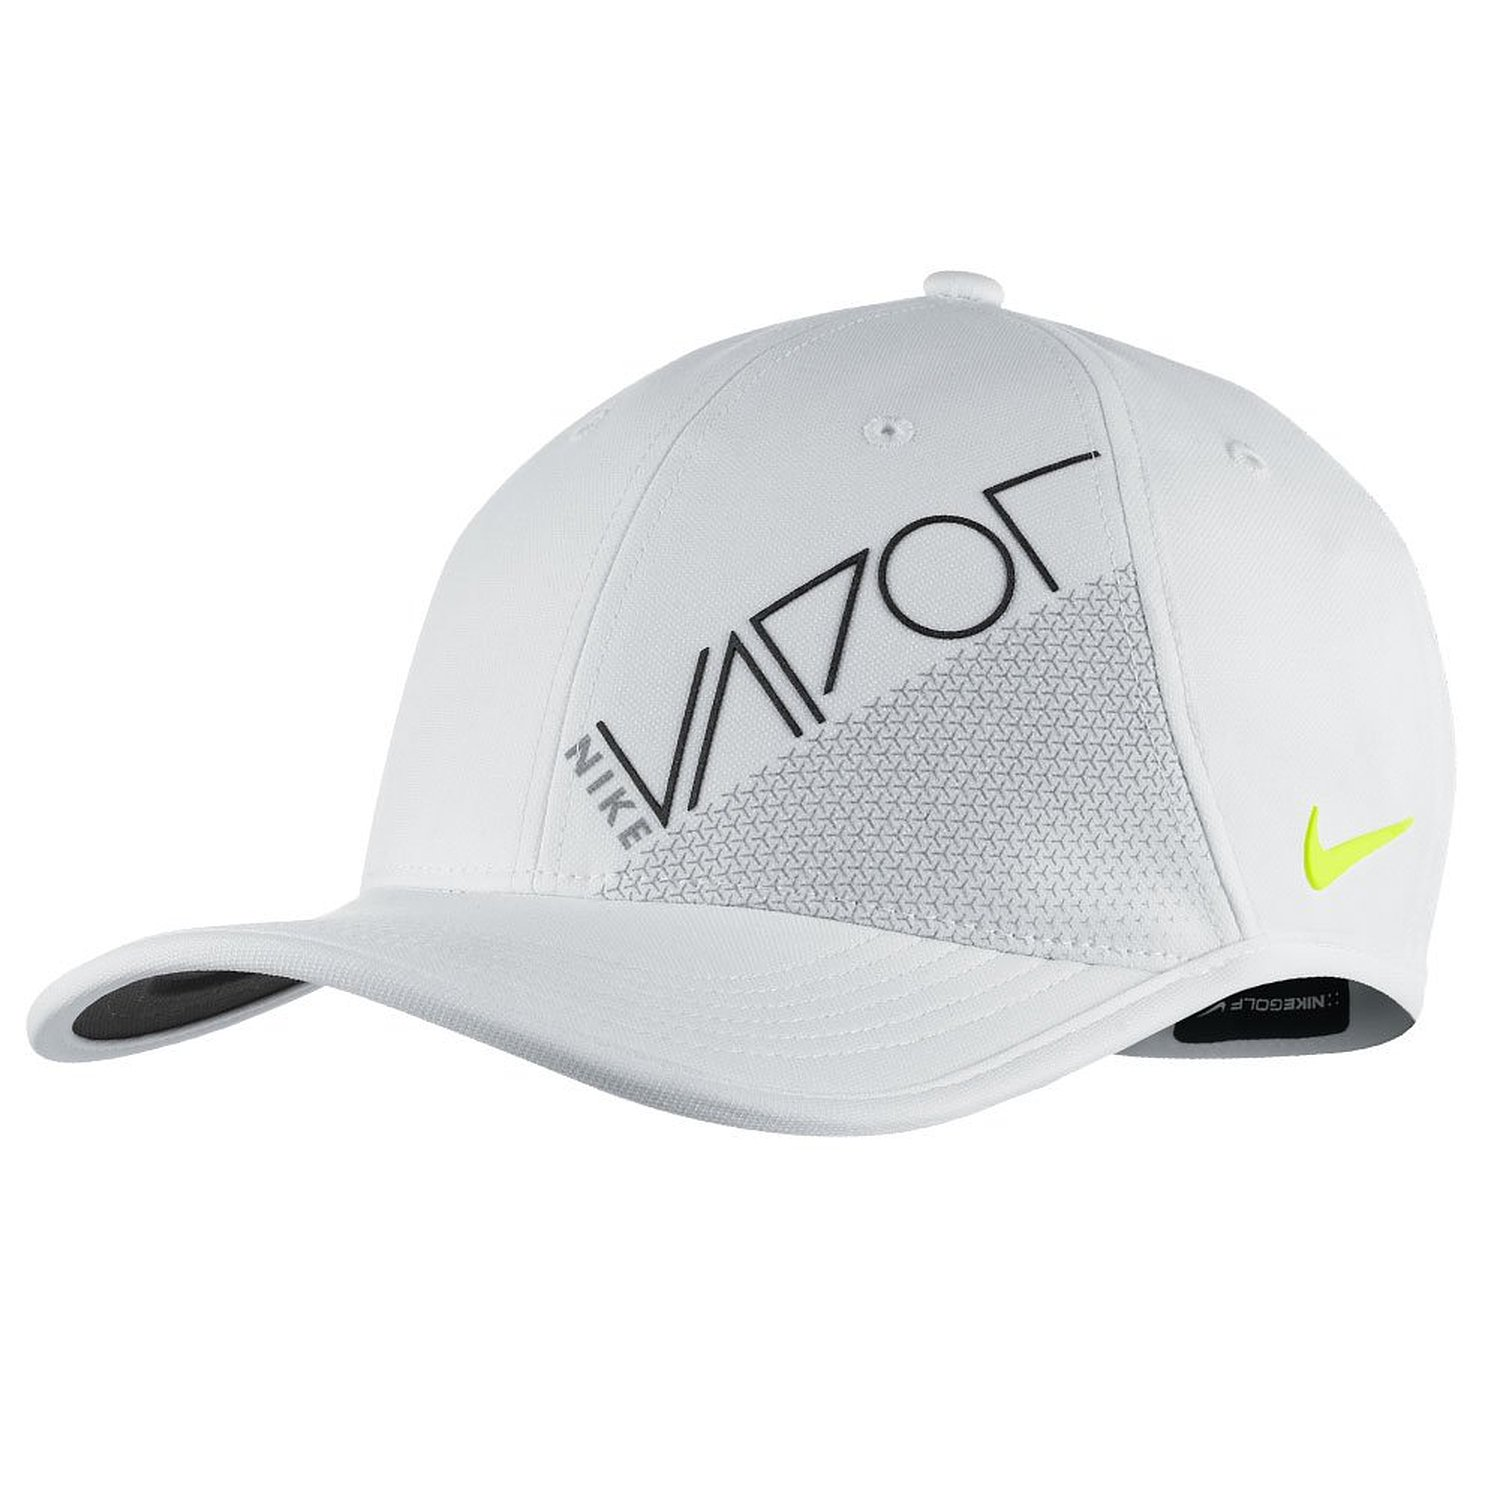 6d2f29b0fc7 Get Quotations · NEW Nike Vapor Ultralight White Adjustable Hat Cap